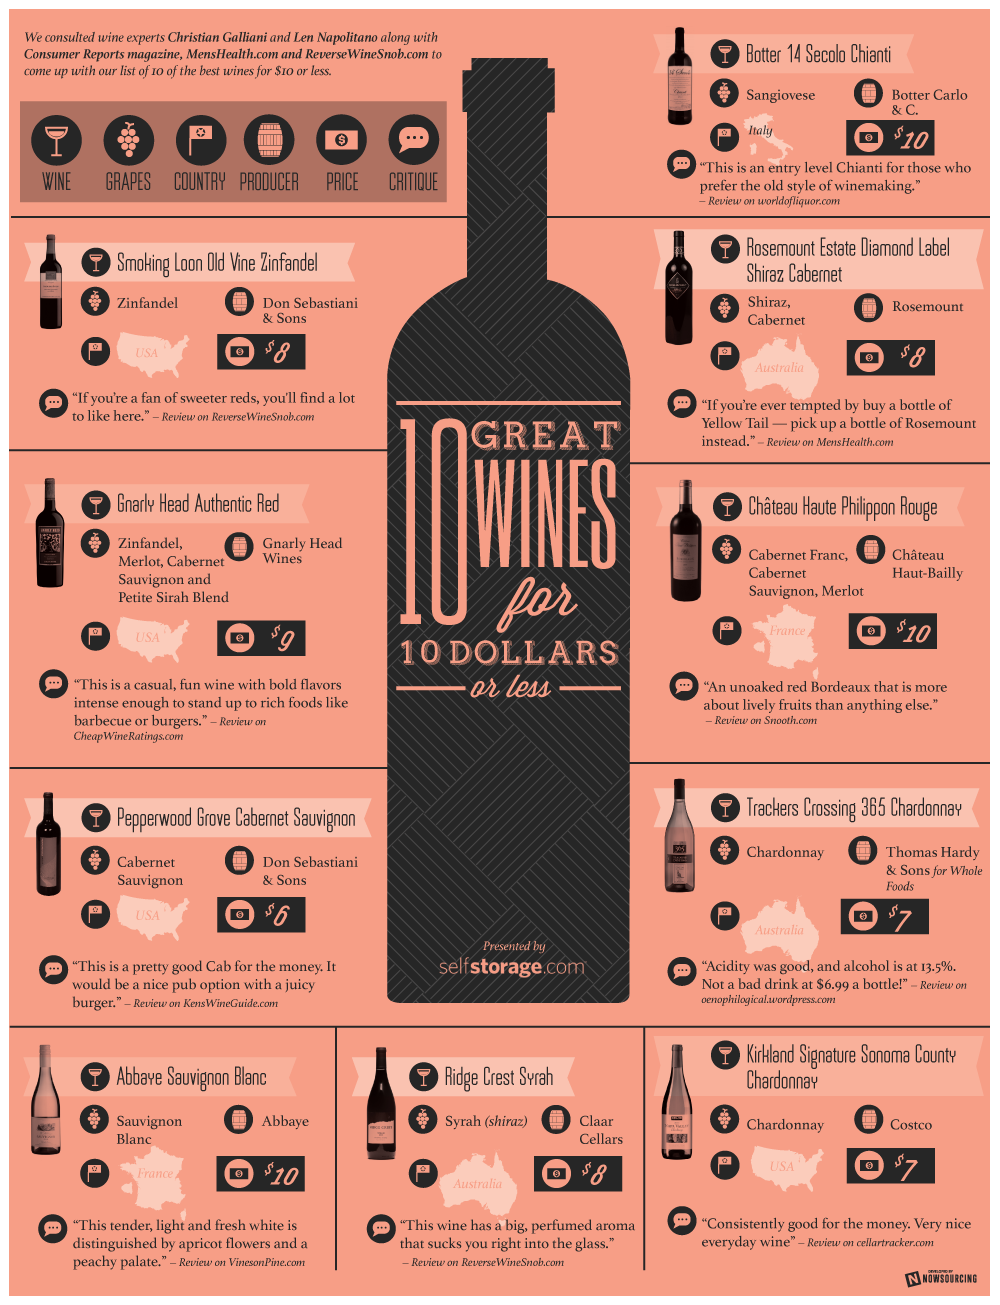 10 Great Wines for $10 or Less by SelfStorage.com